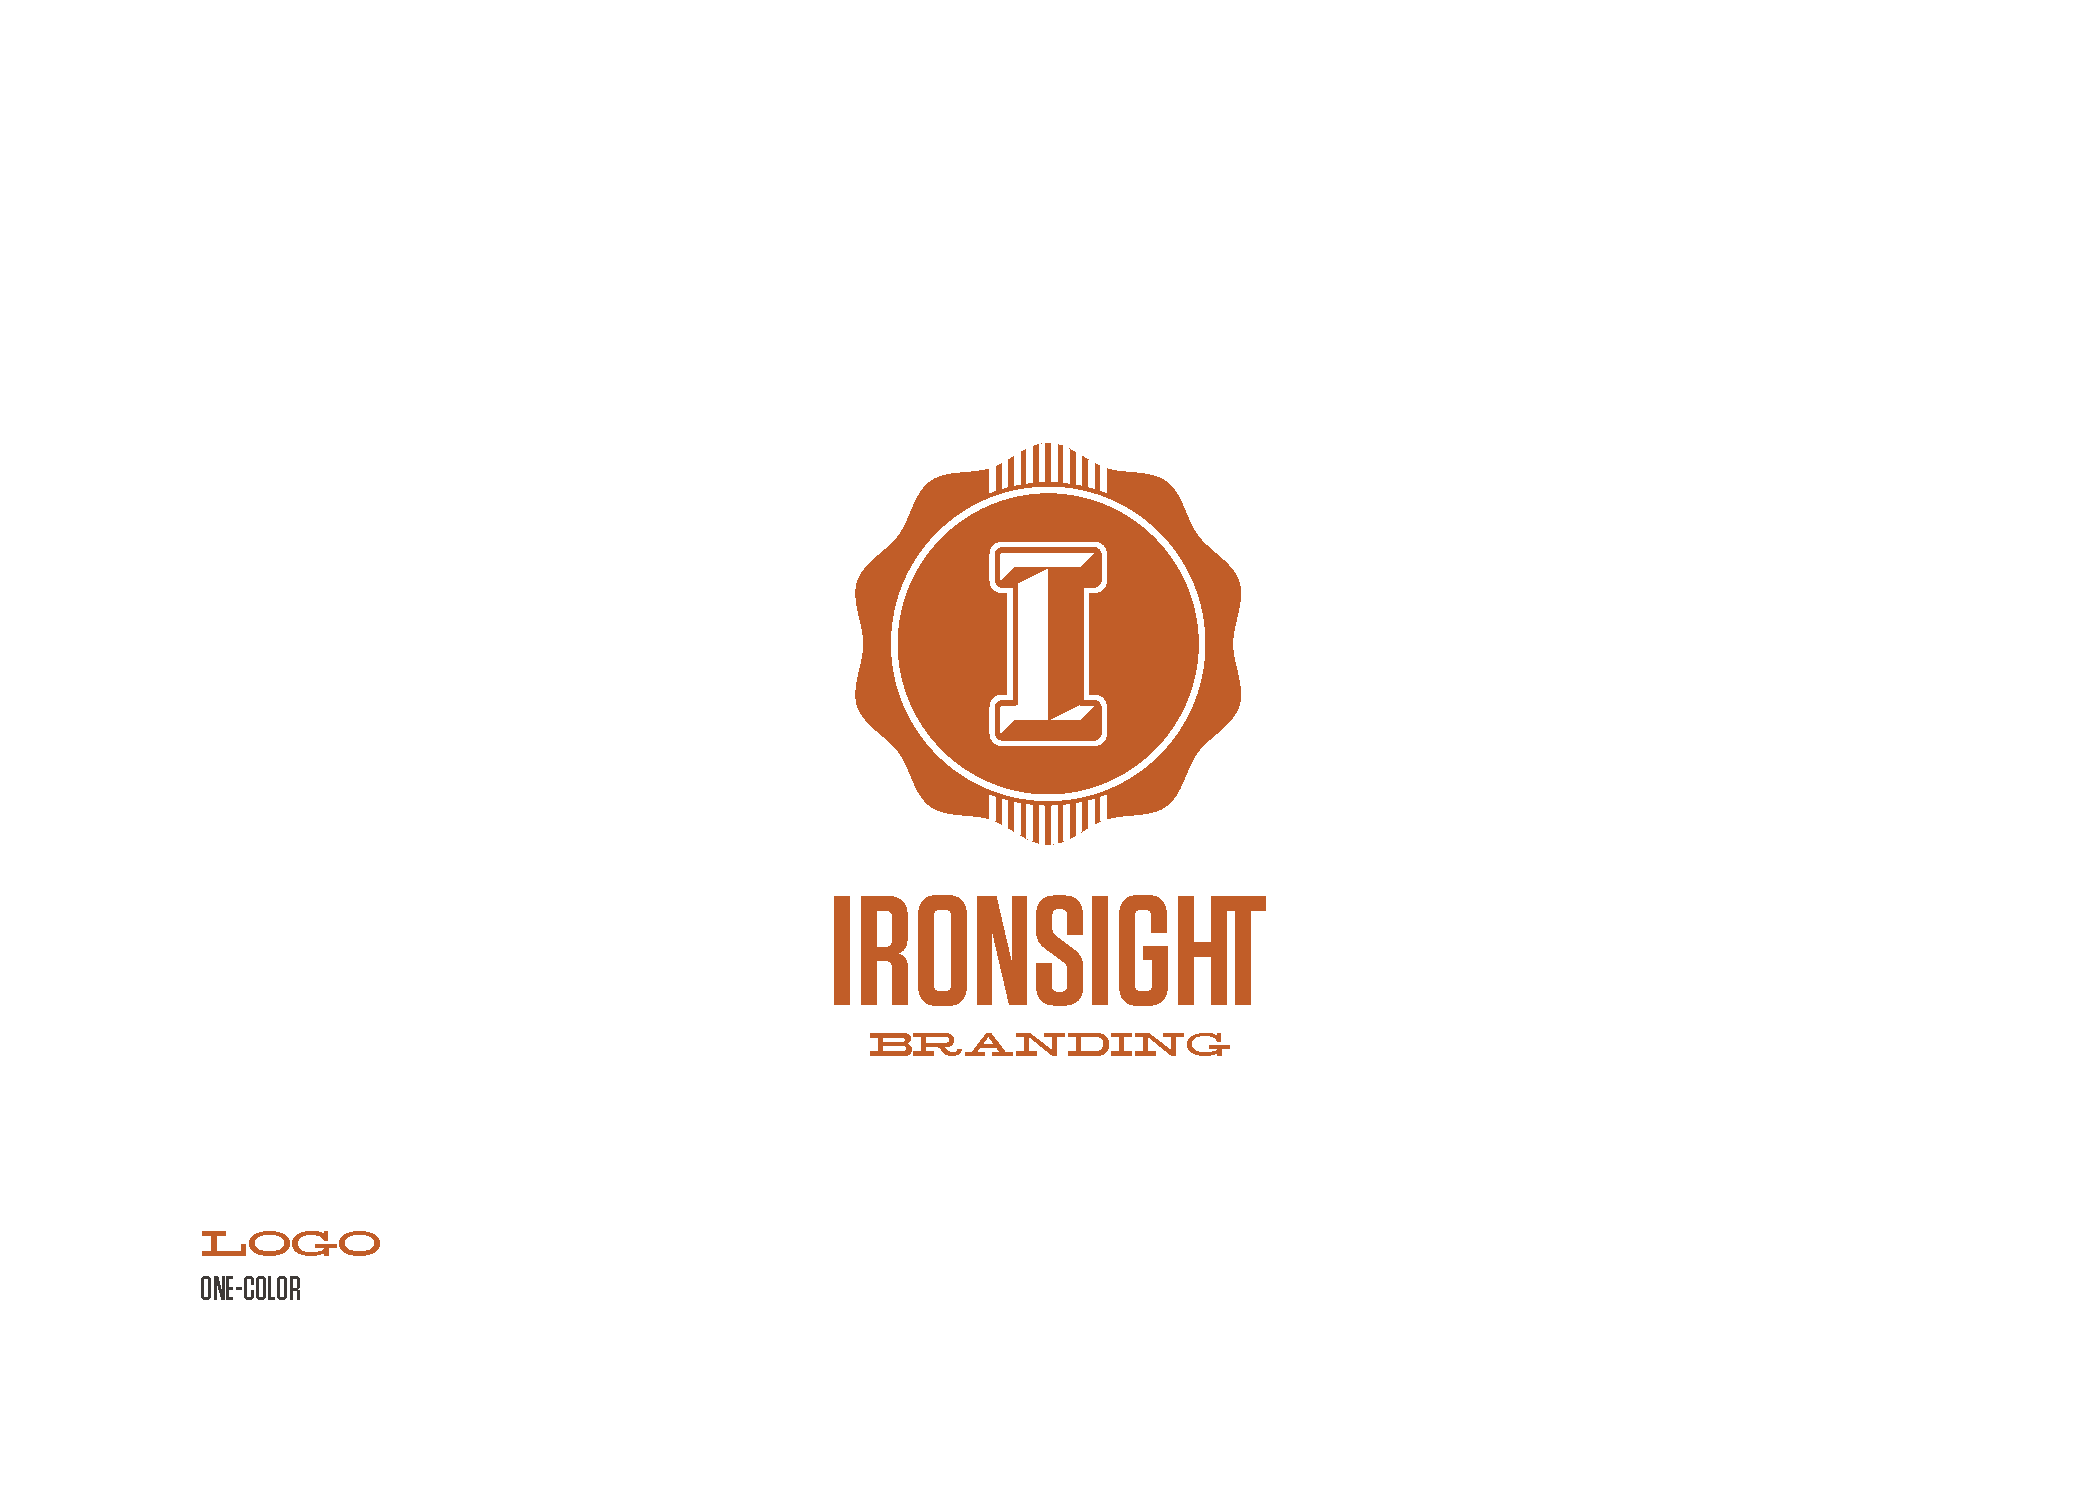 ironsight_branding copy_Page_07.png